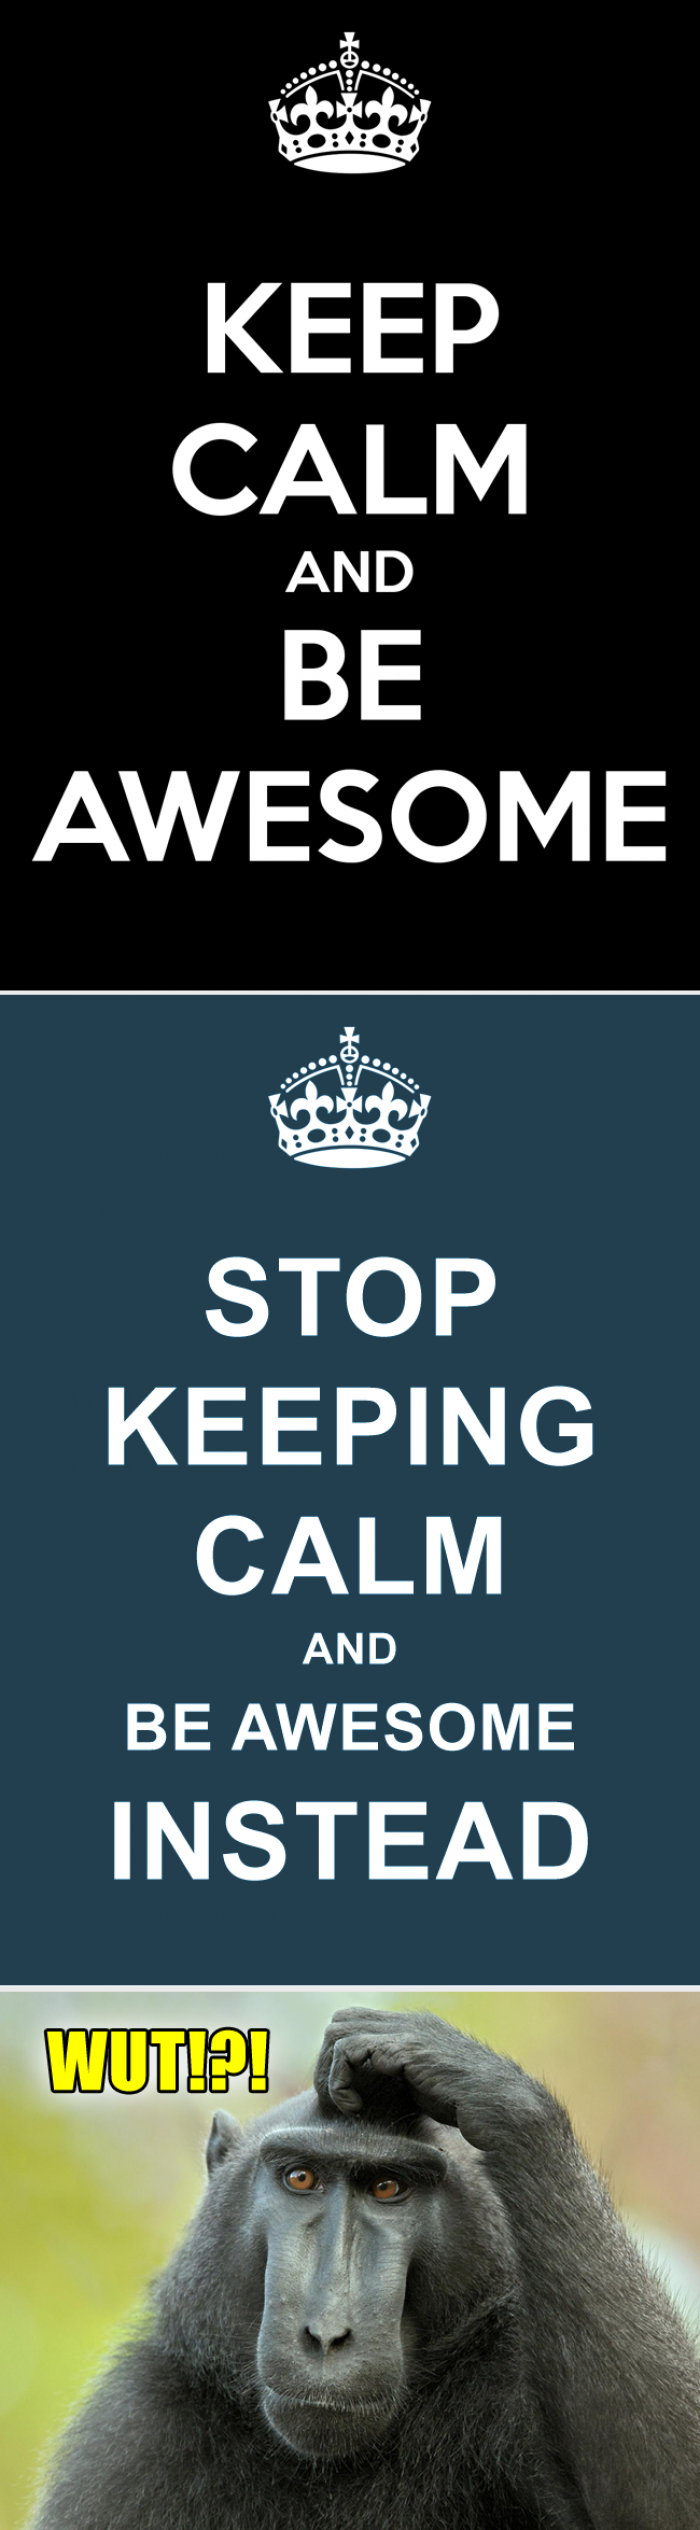 Keep calm is awesome or not!?!